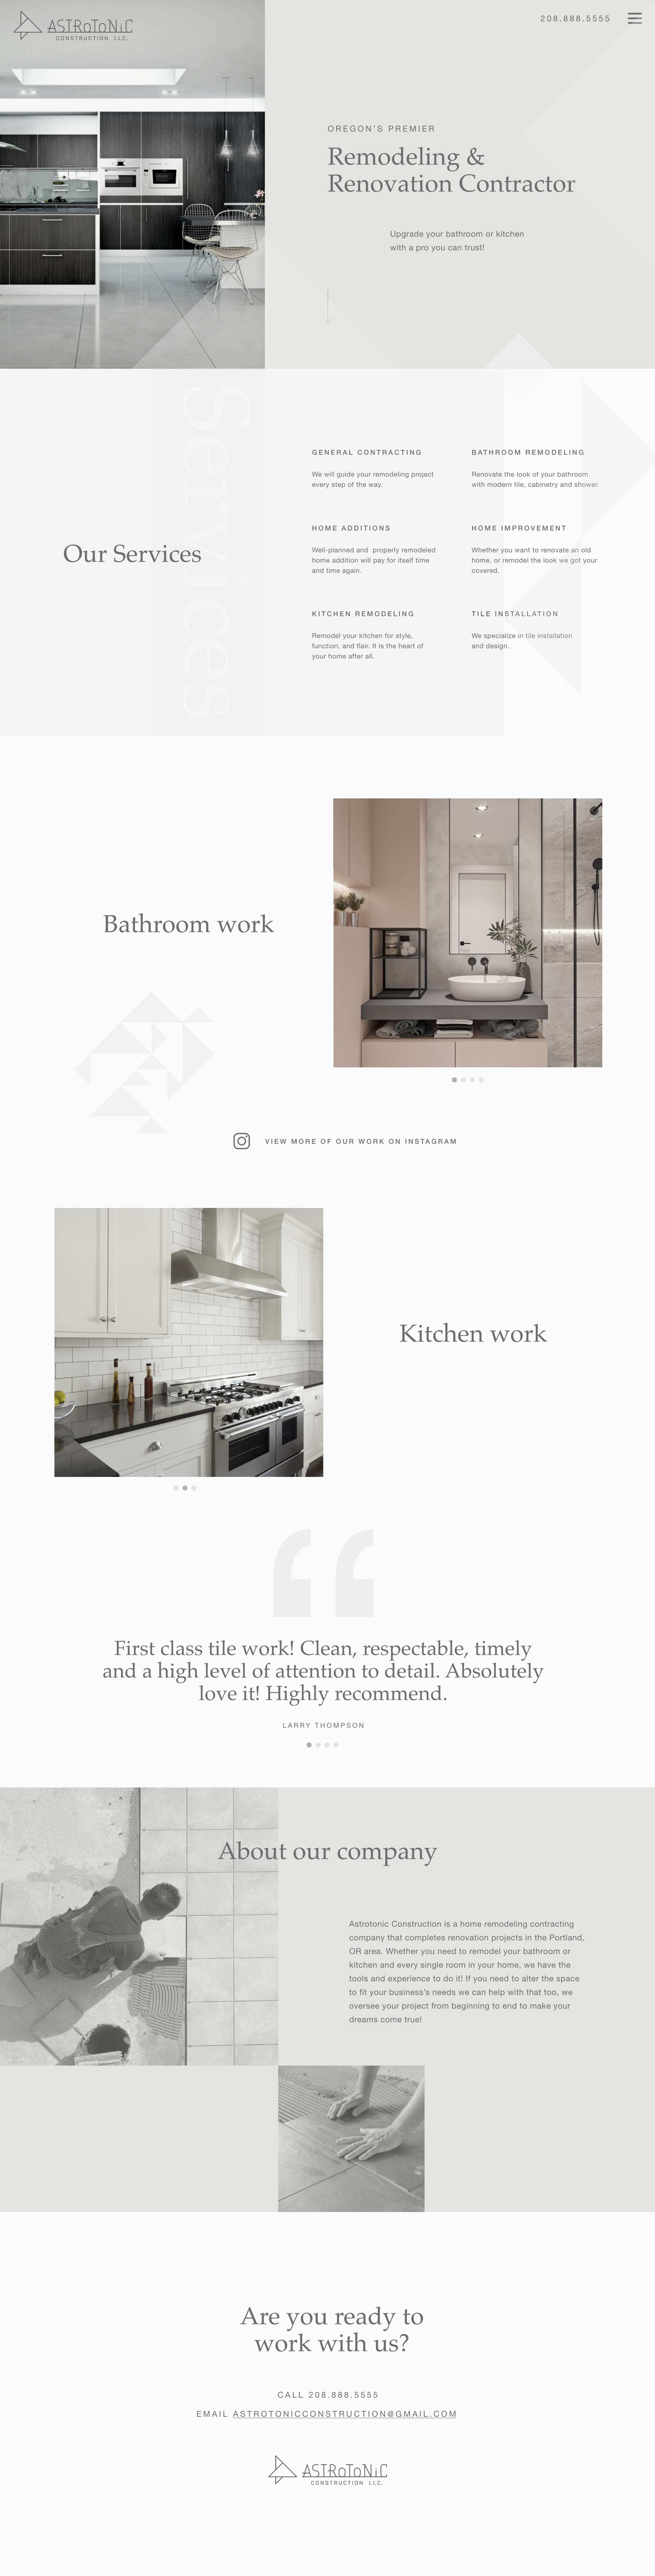 Tile and Bathroom remodeling contractor web design